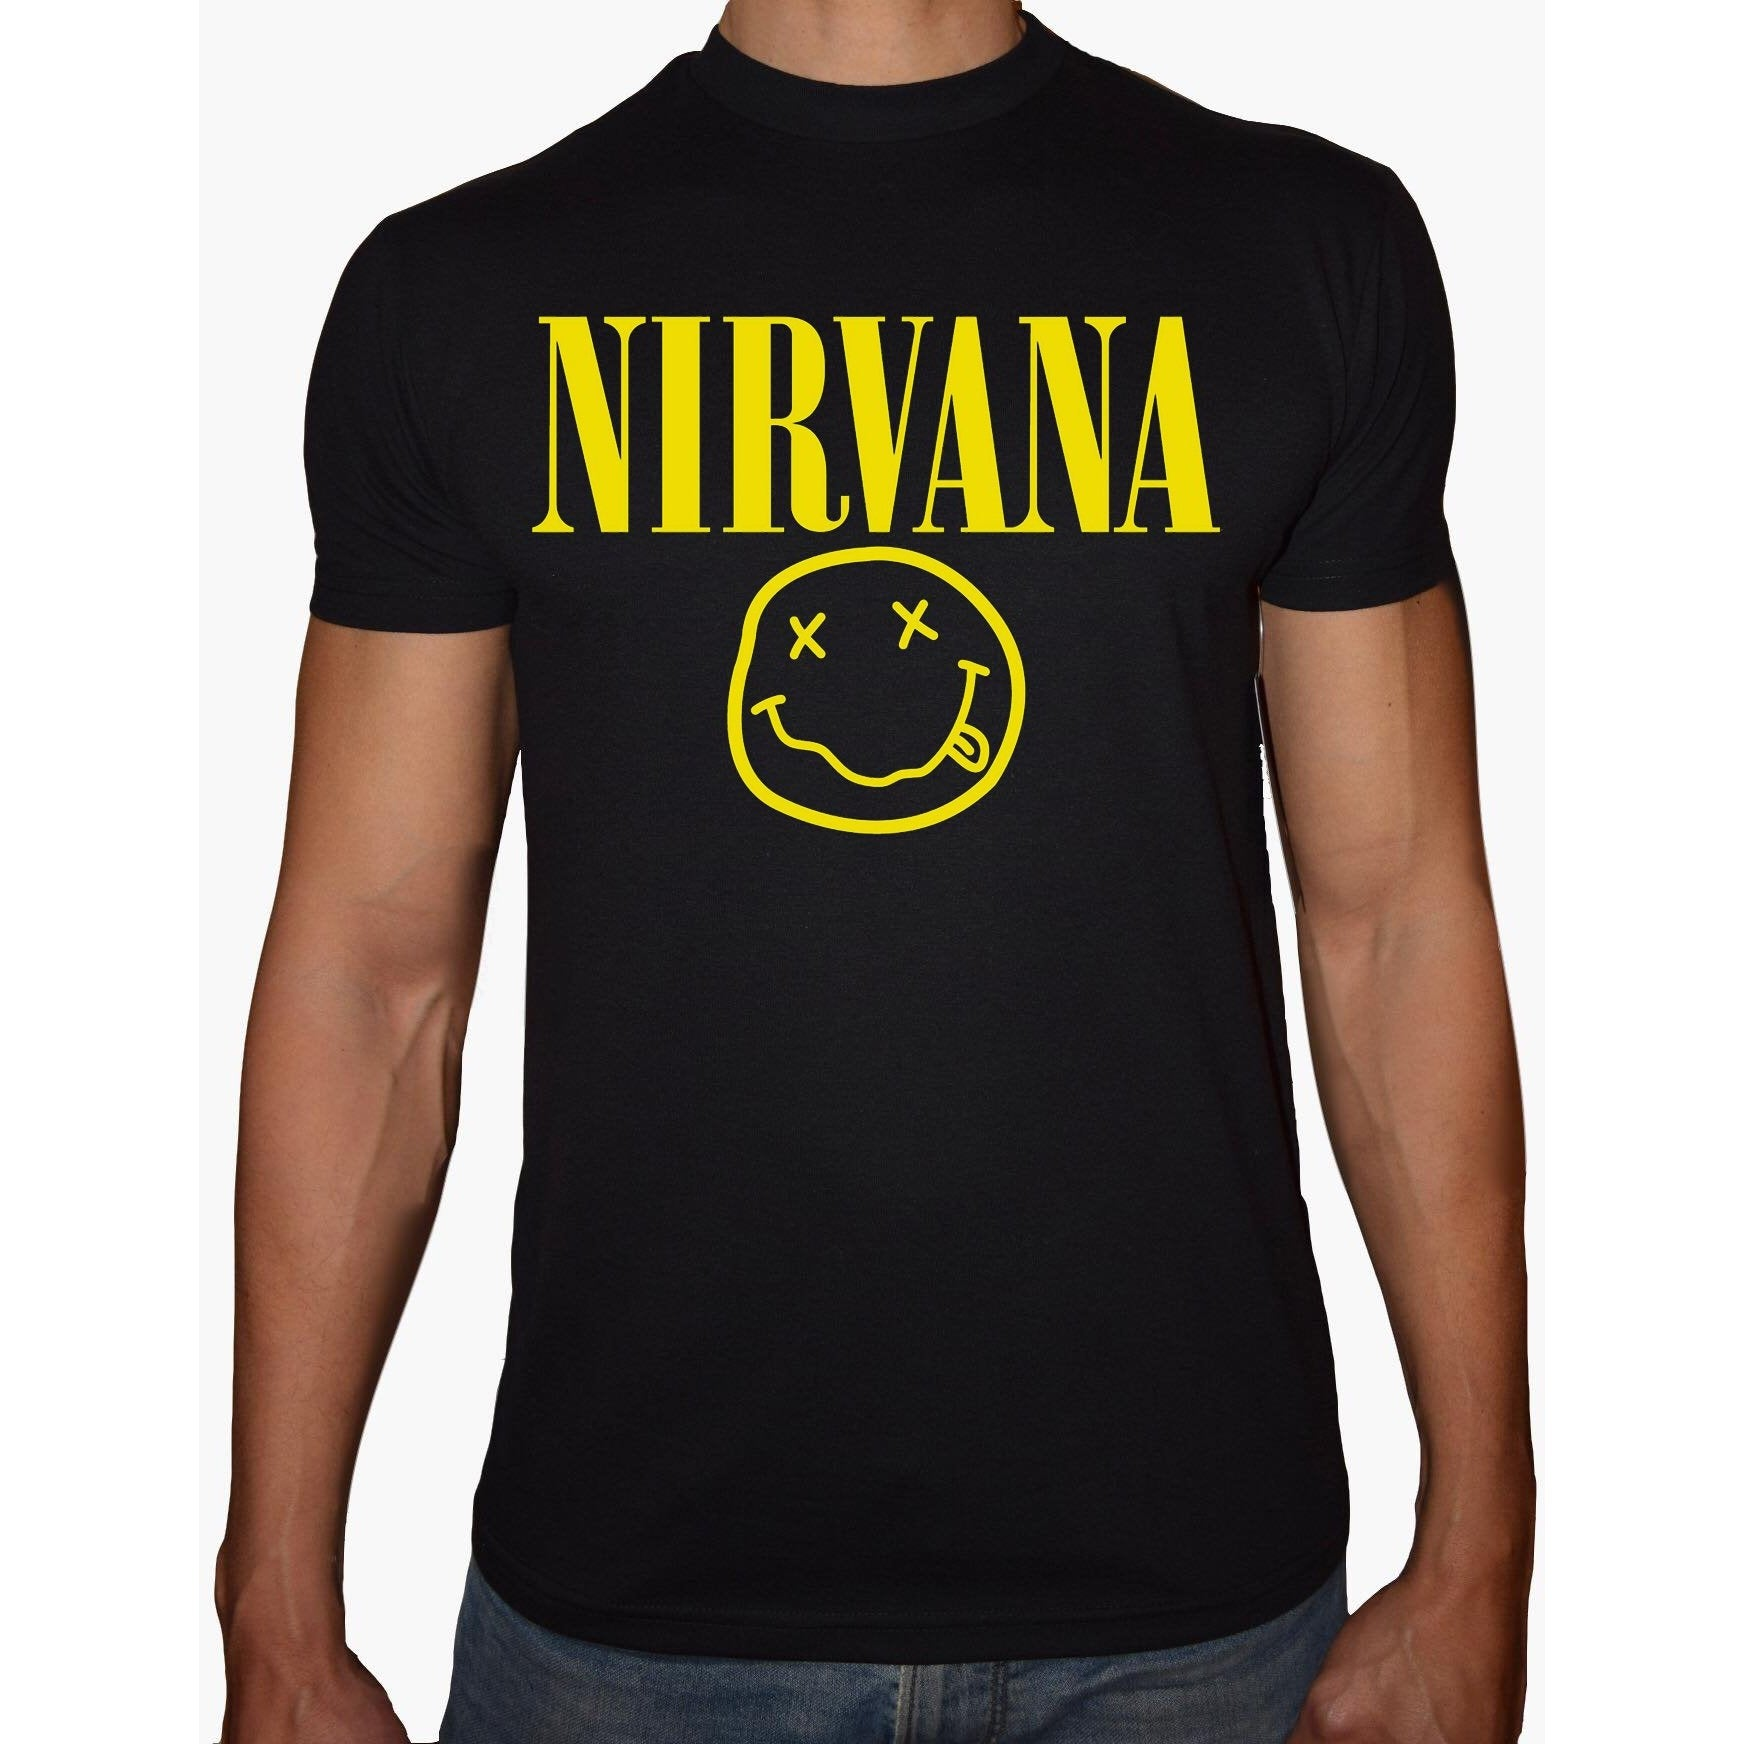 Phoenix BLACK Round Neck Printed T-Shirt Men (Nirvana)